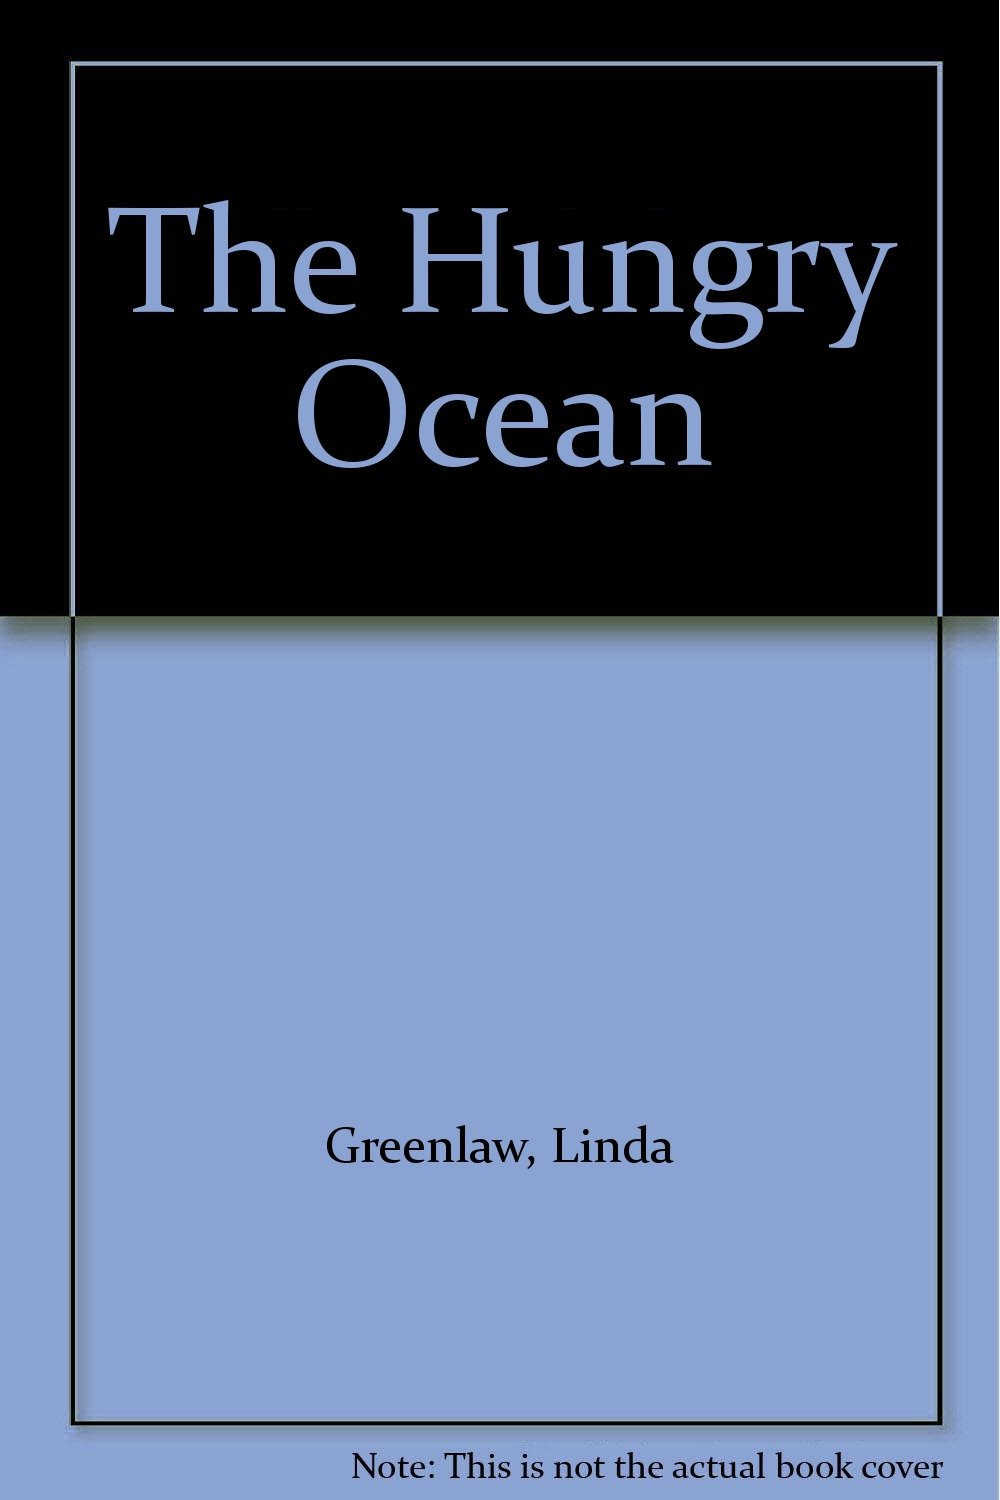 The Hungry Ocean